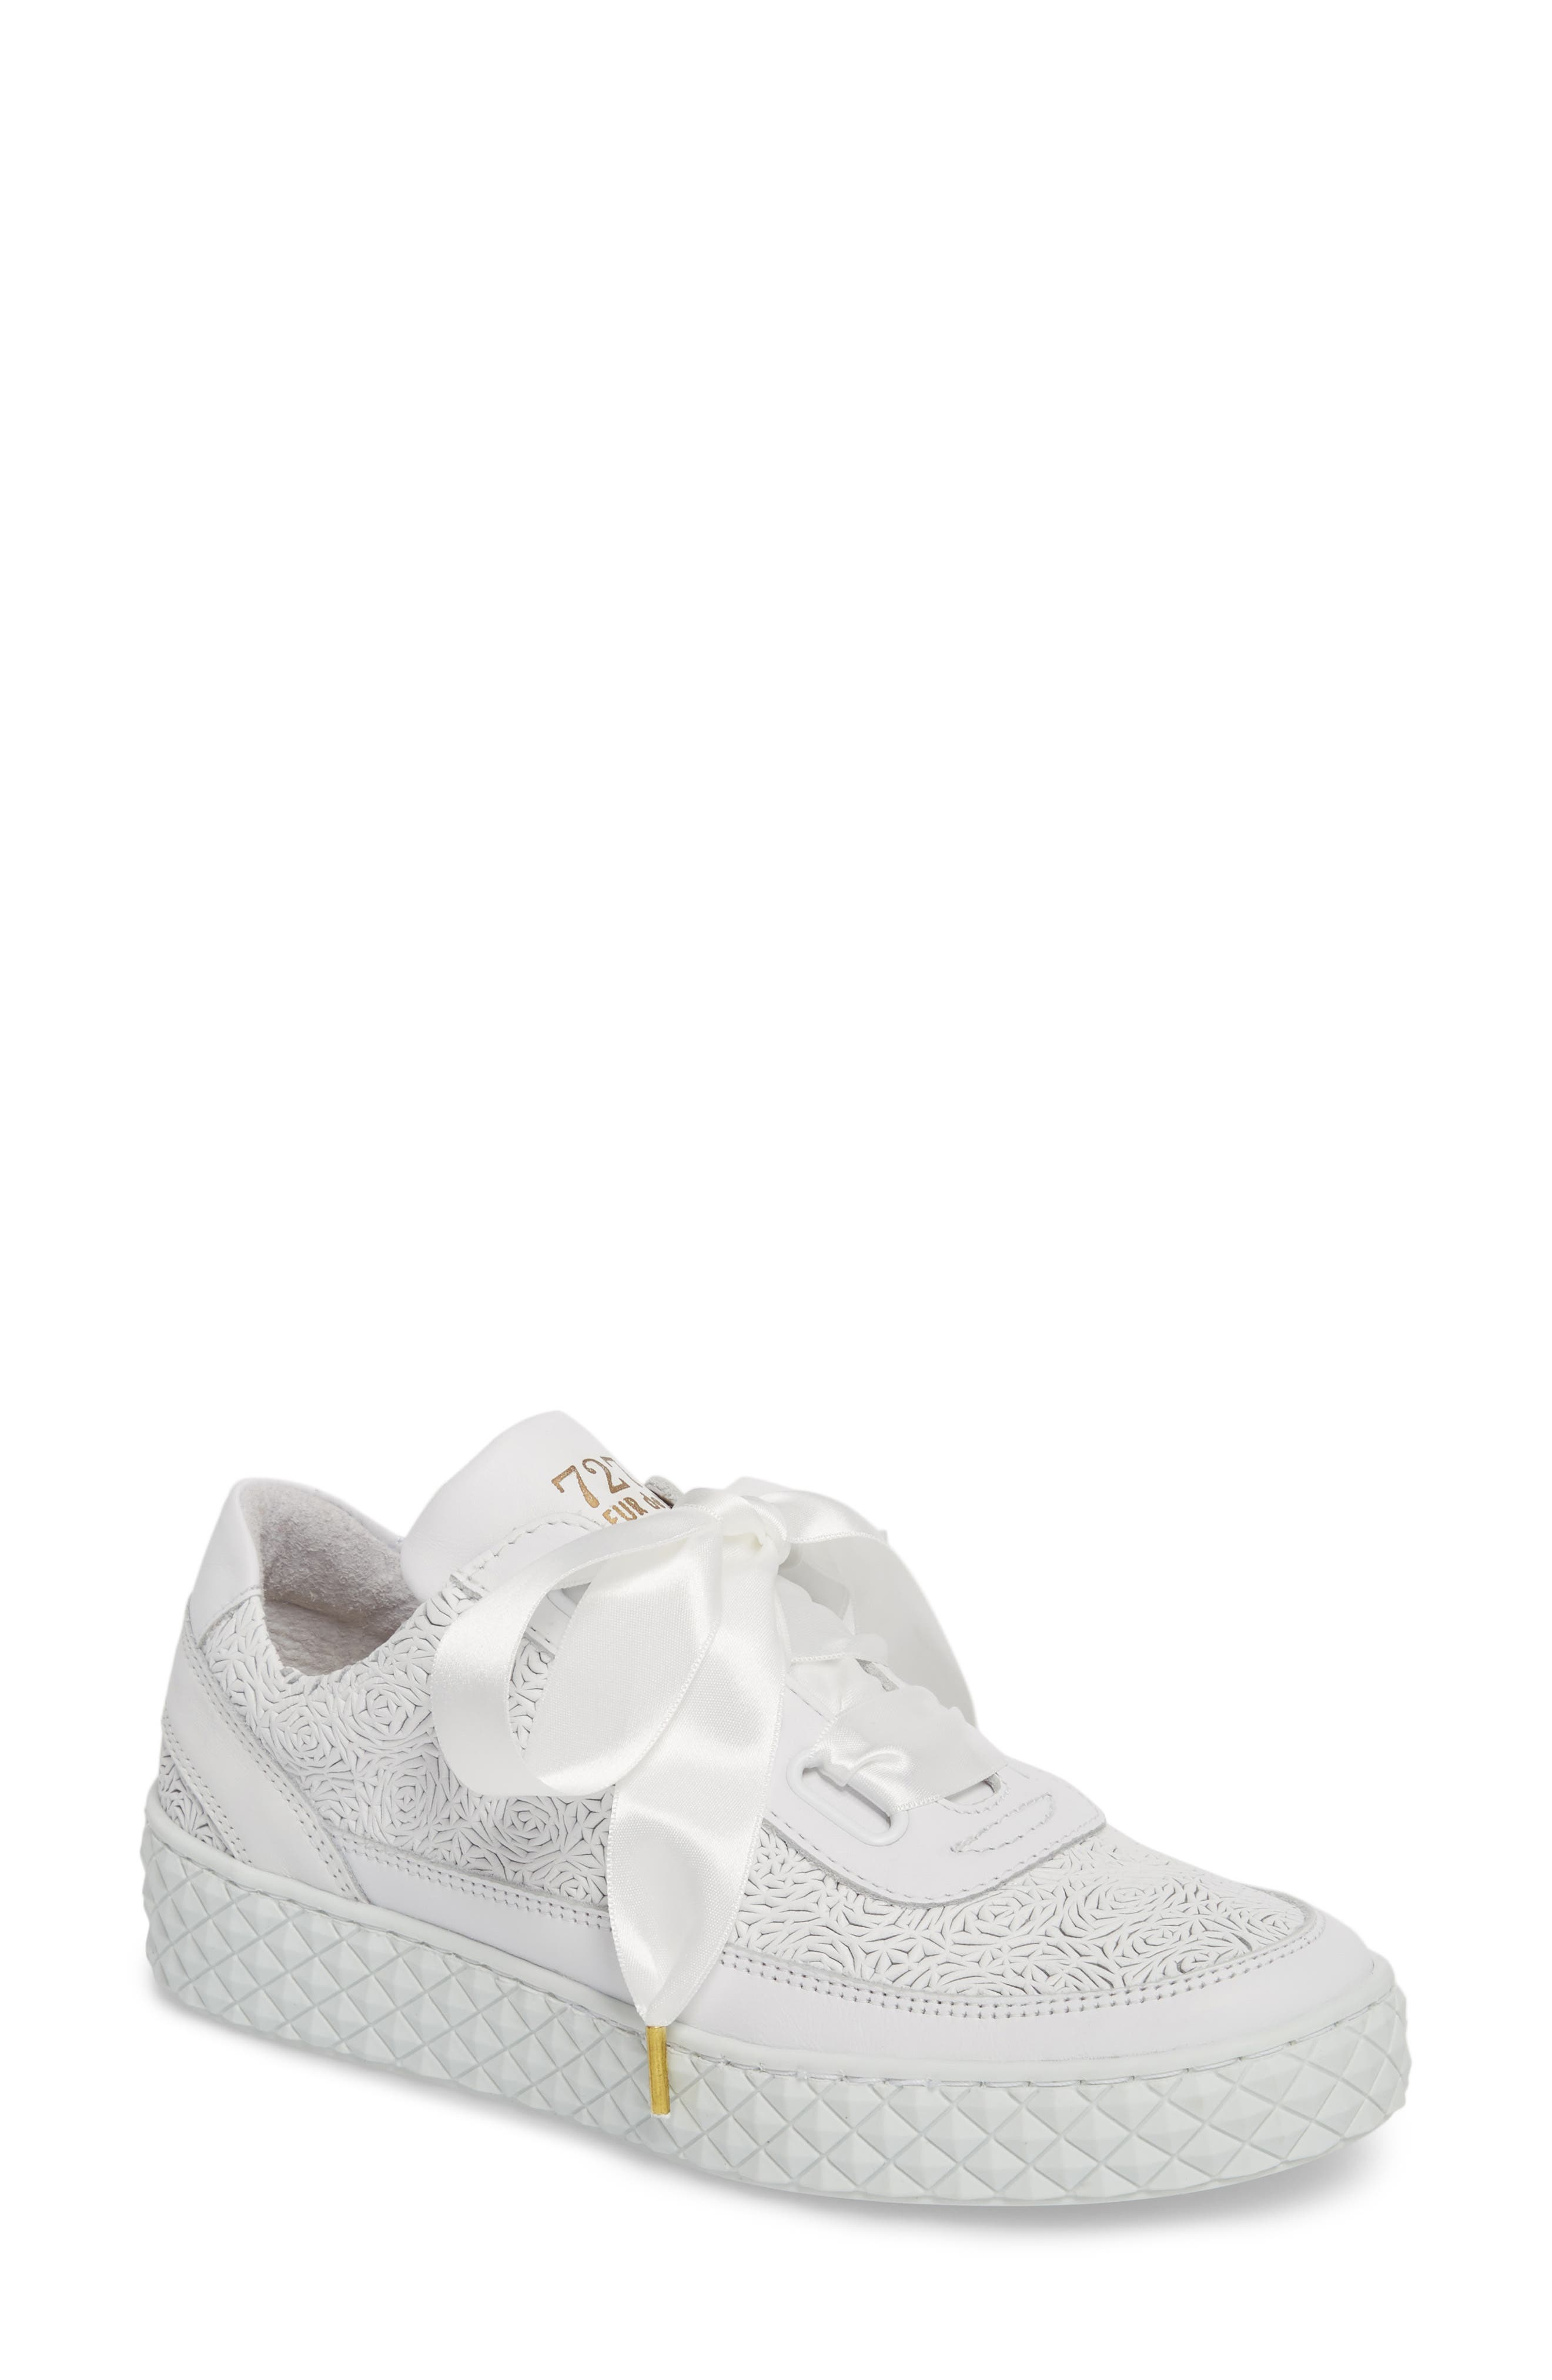 Montreal Sneaker,                         Main,                         color, White Leather